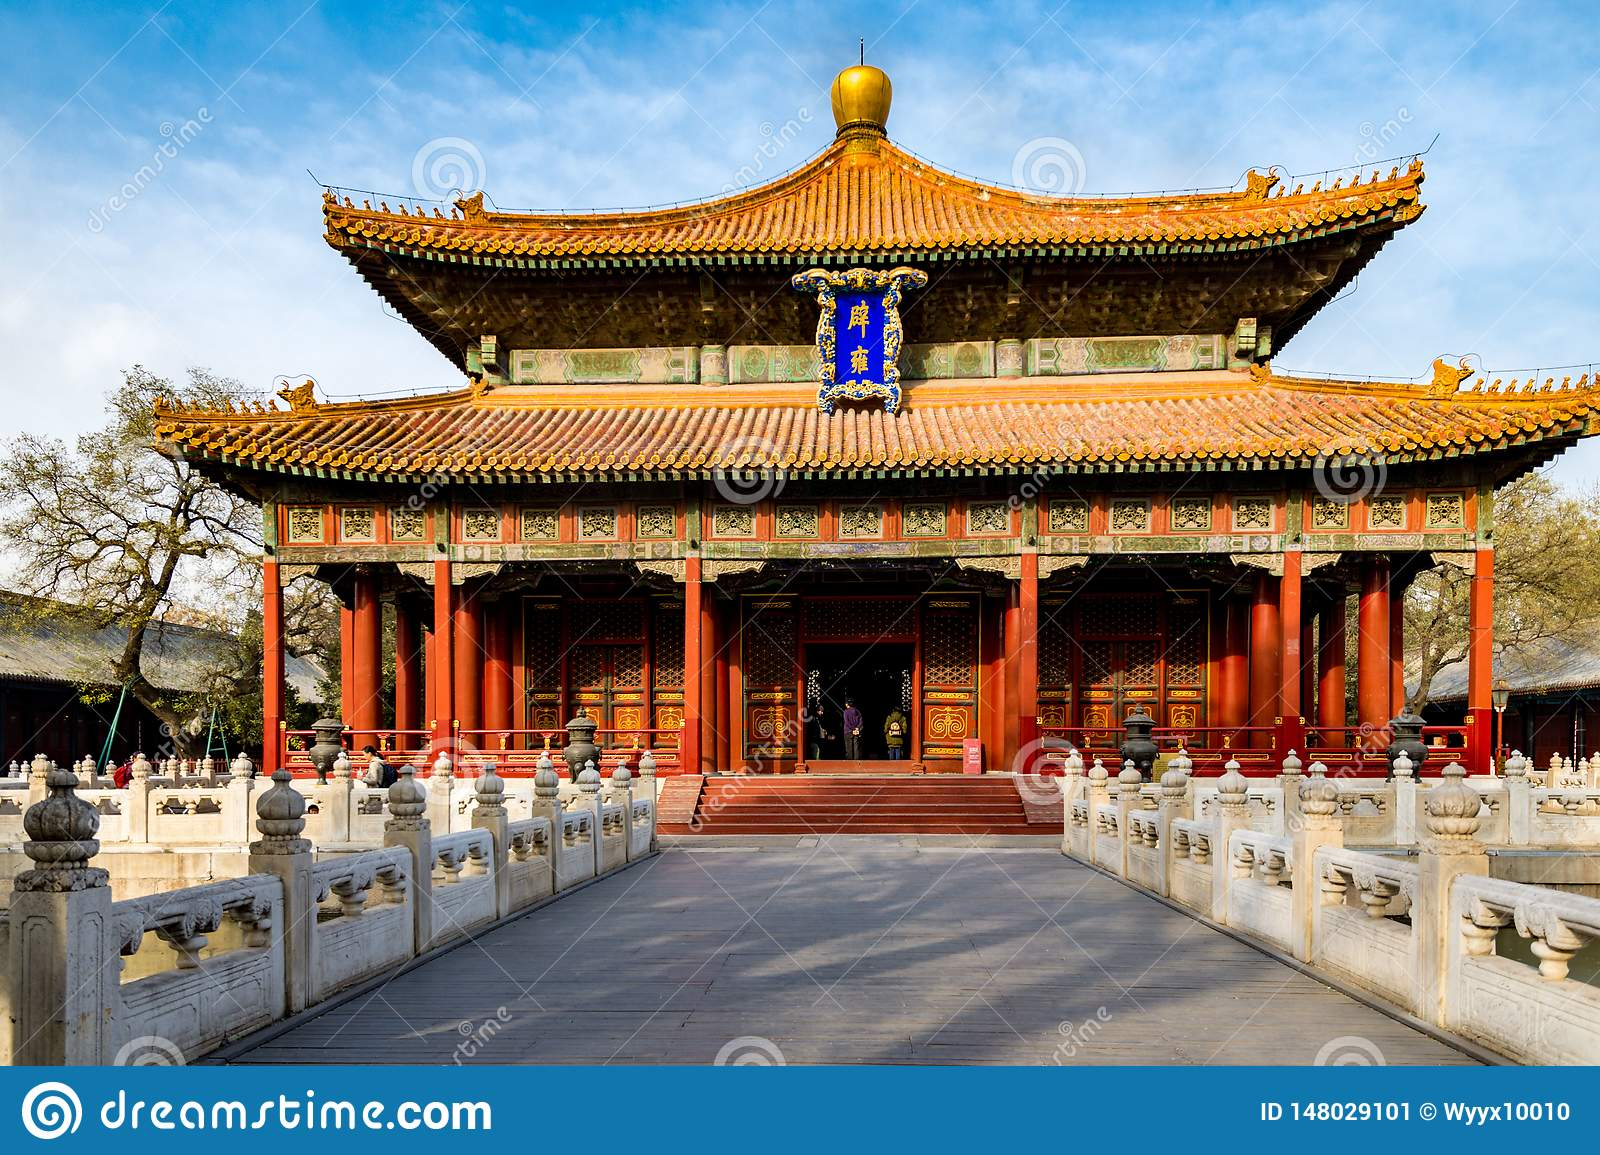 Classical and Historic Architecture in Beijing, China